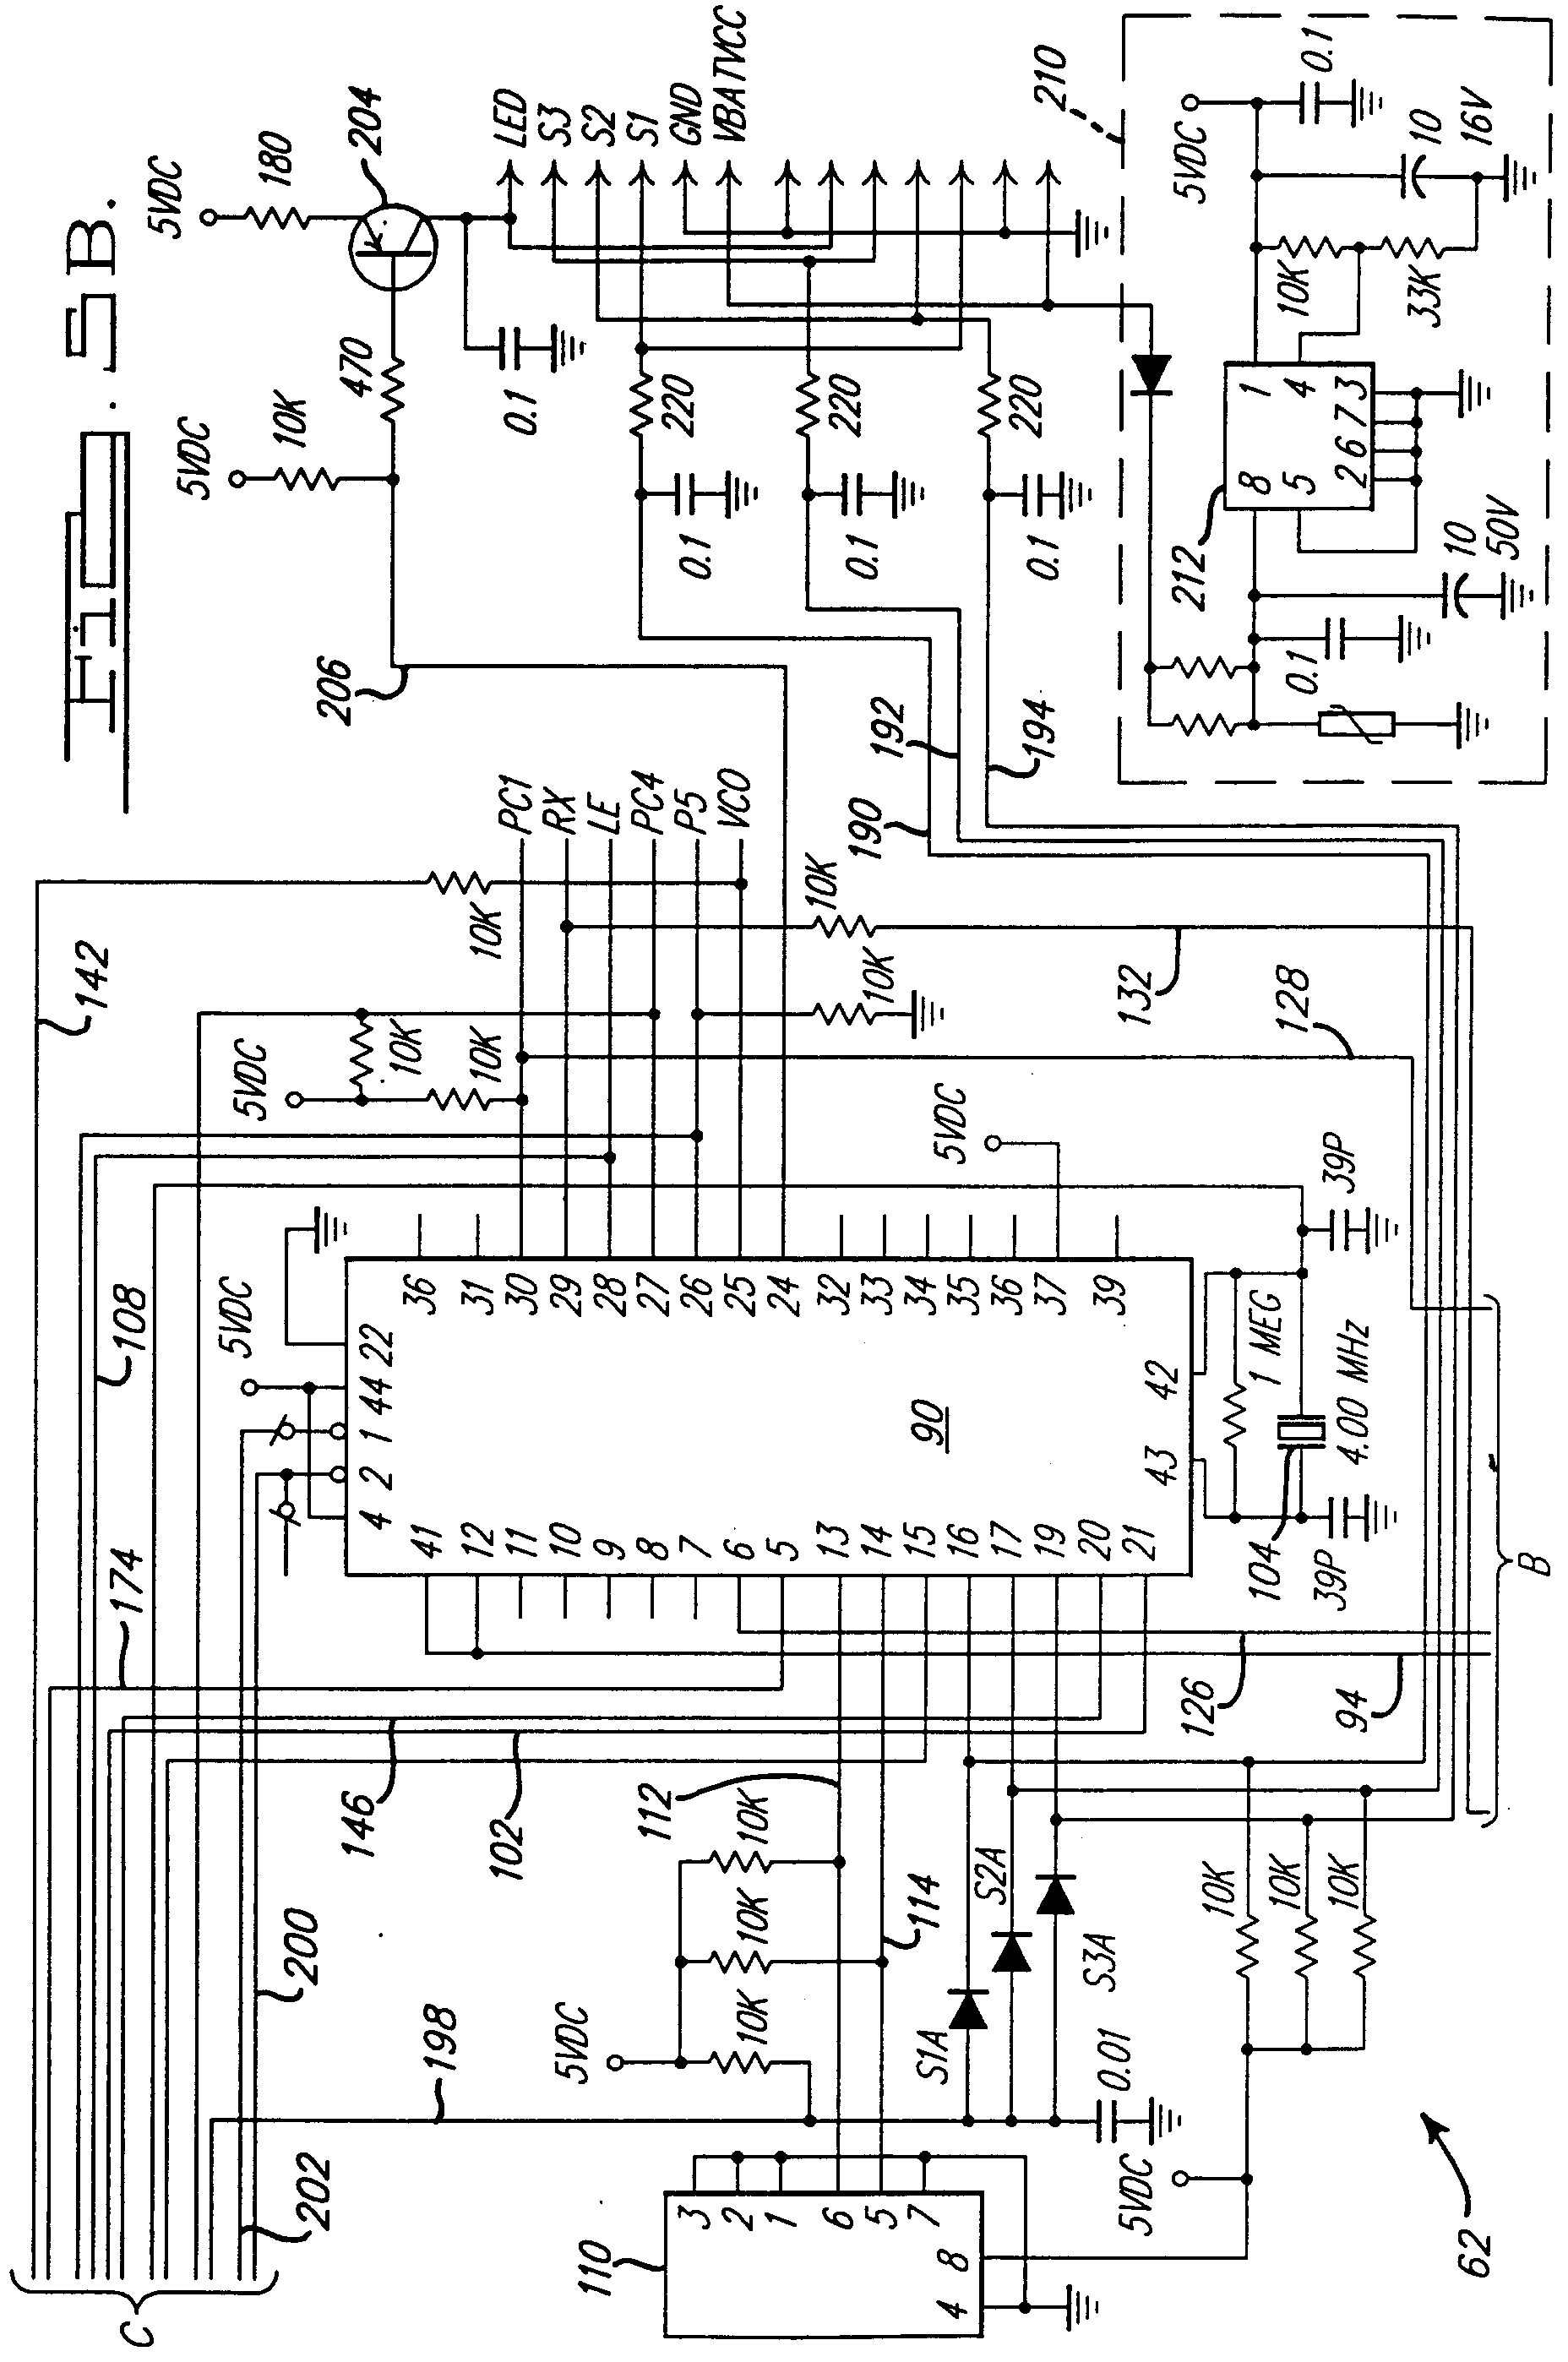 garage door opener circuit board schematic wiring diagram auto genie garage door opener circuit board schematic [ 1856 x 2796 Pixel ]